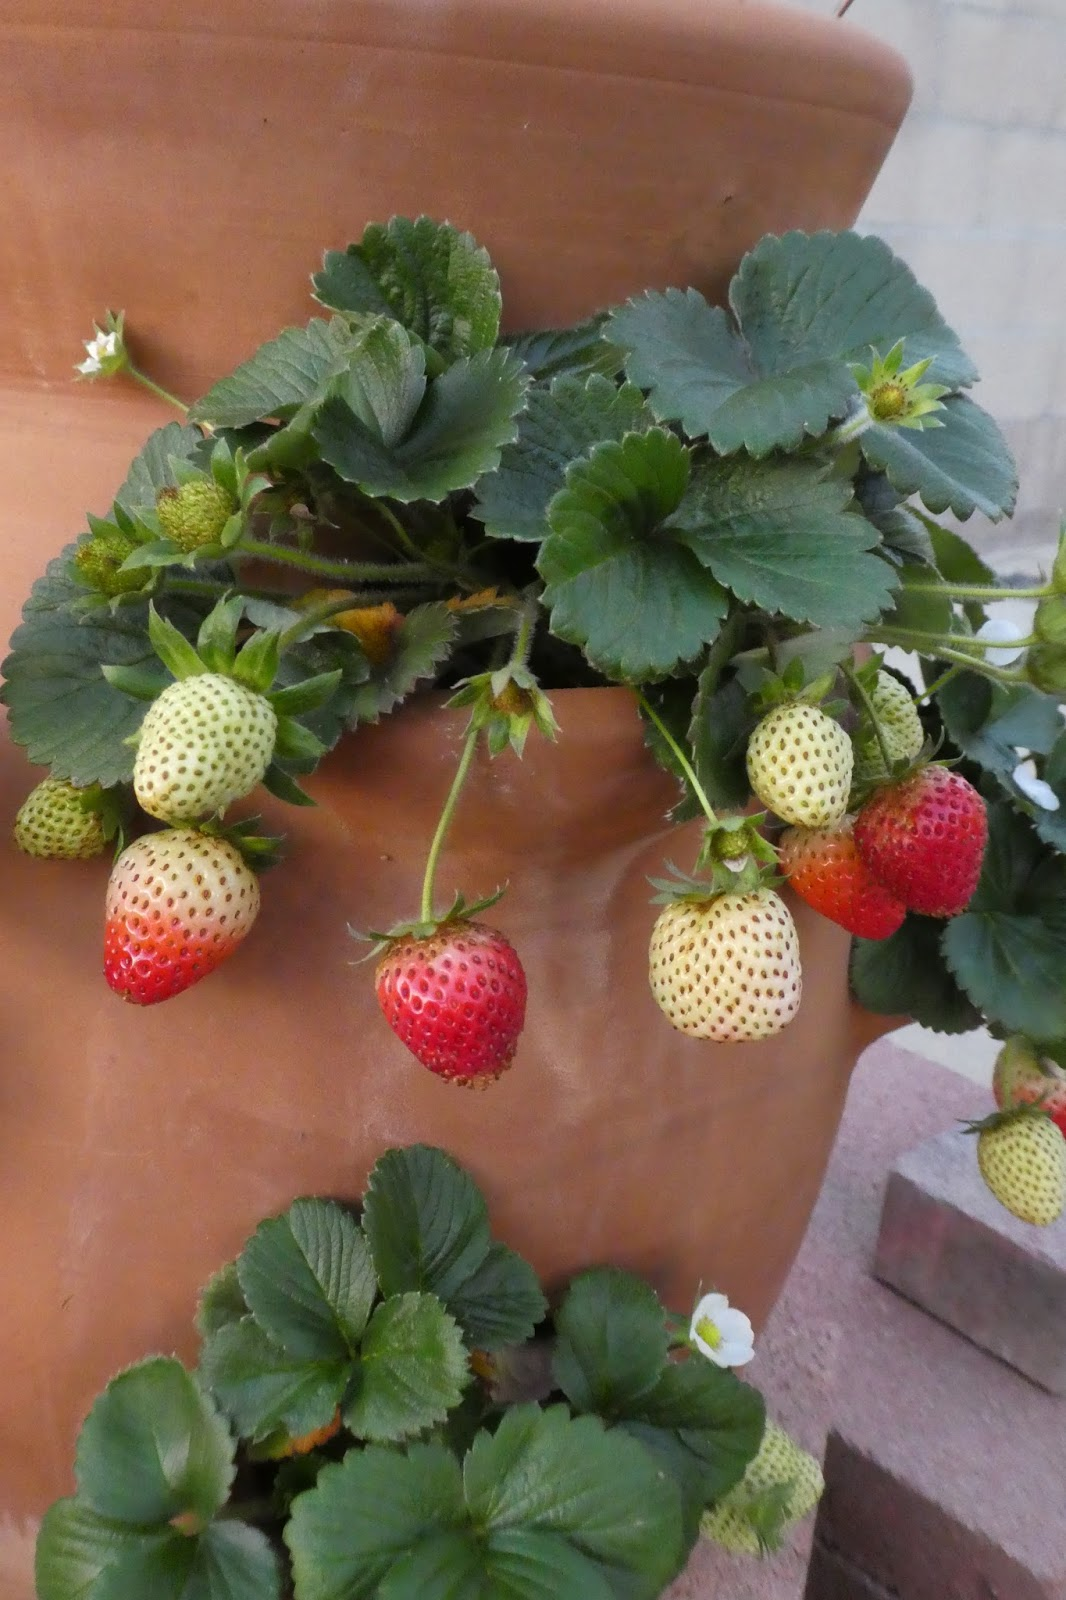 Why I Love To Garden: Sequoia Strawberries